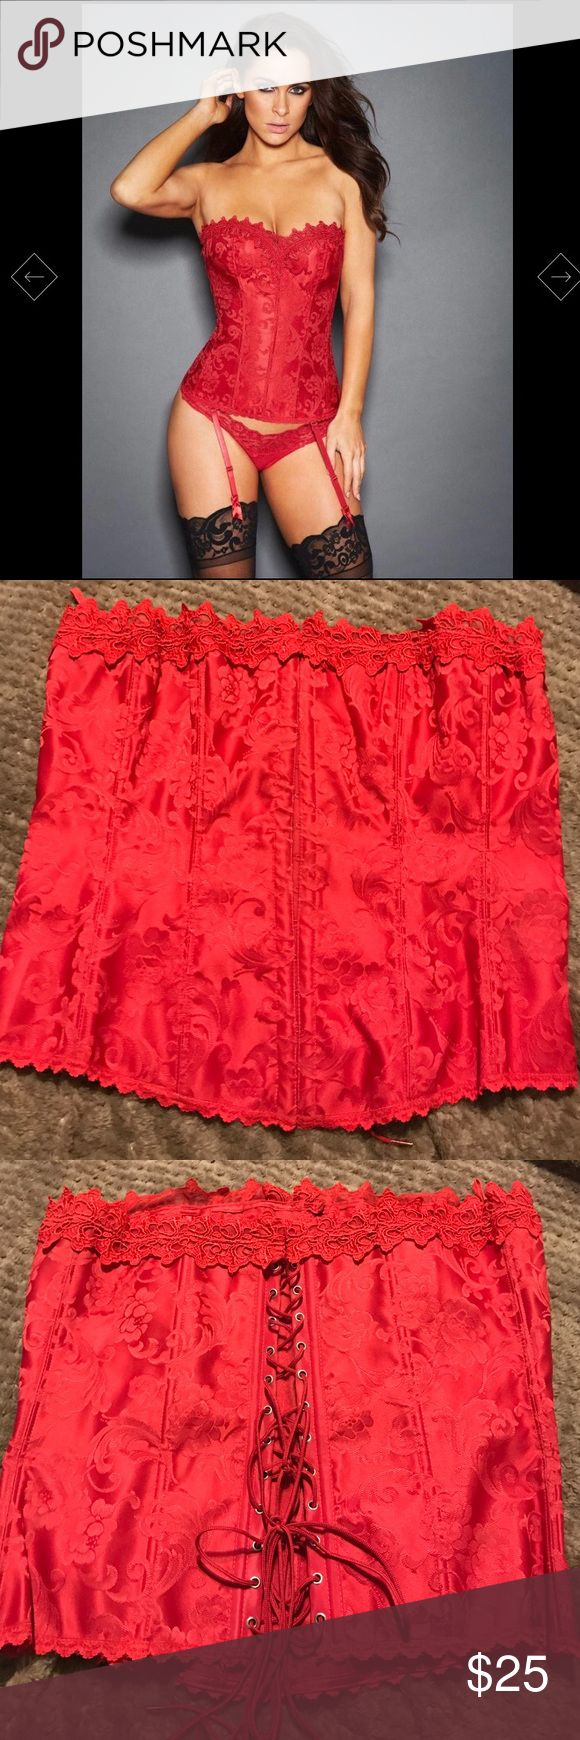 Classic red corset Must have classic red corset from Fredericks of Hollywood. Lace up corset to give off the perfect hour class shape  Frederick's of Hollywood Intimates & Sleepwear